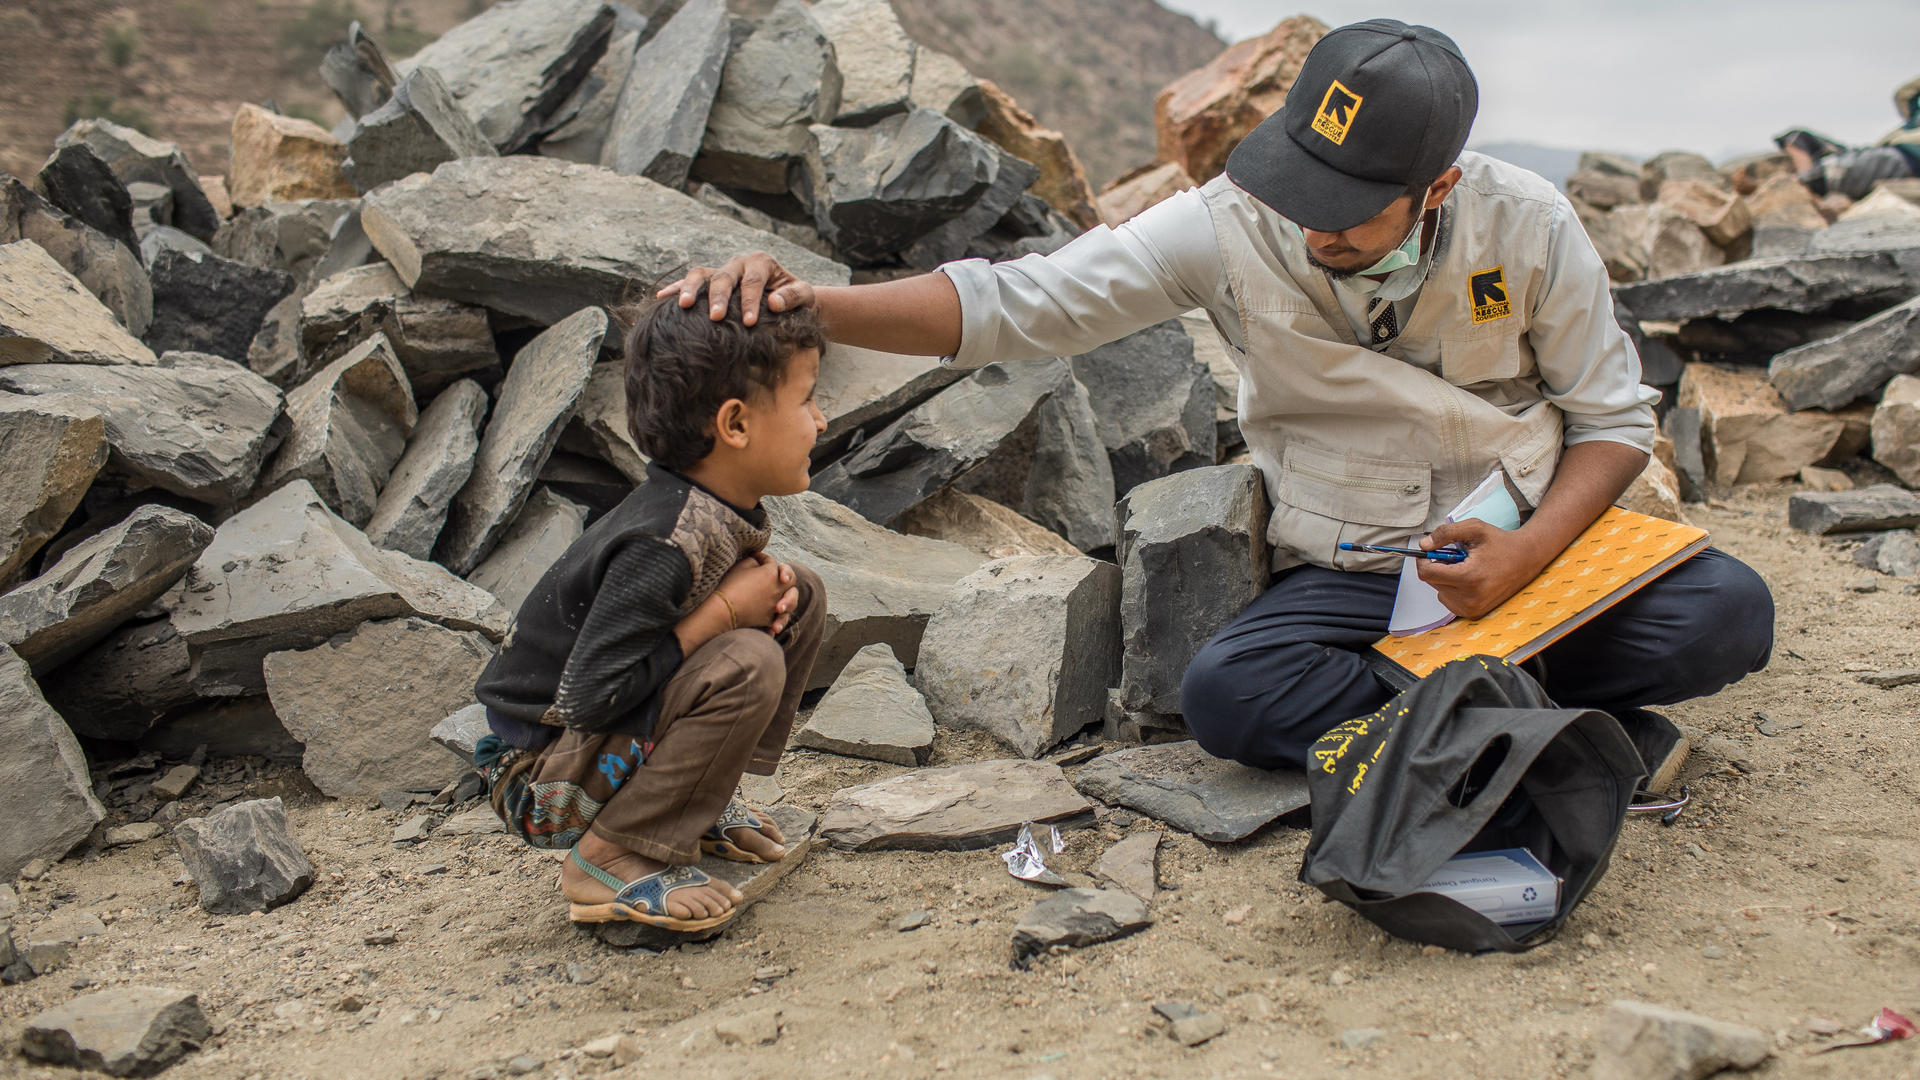 A worker from an IRC mobile health team examines a child in a remote village in Yemen